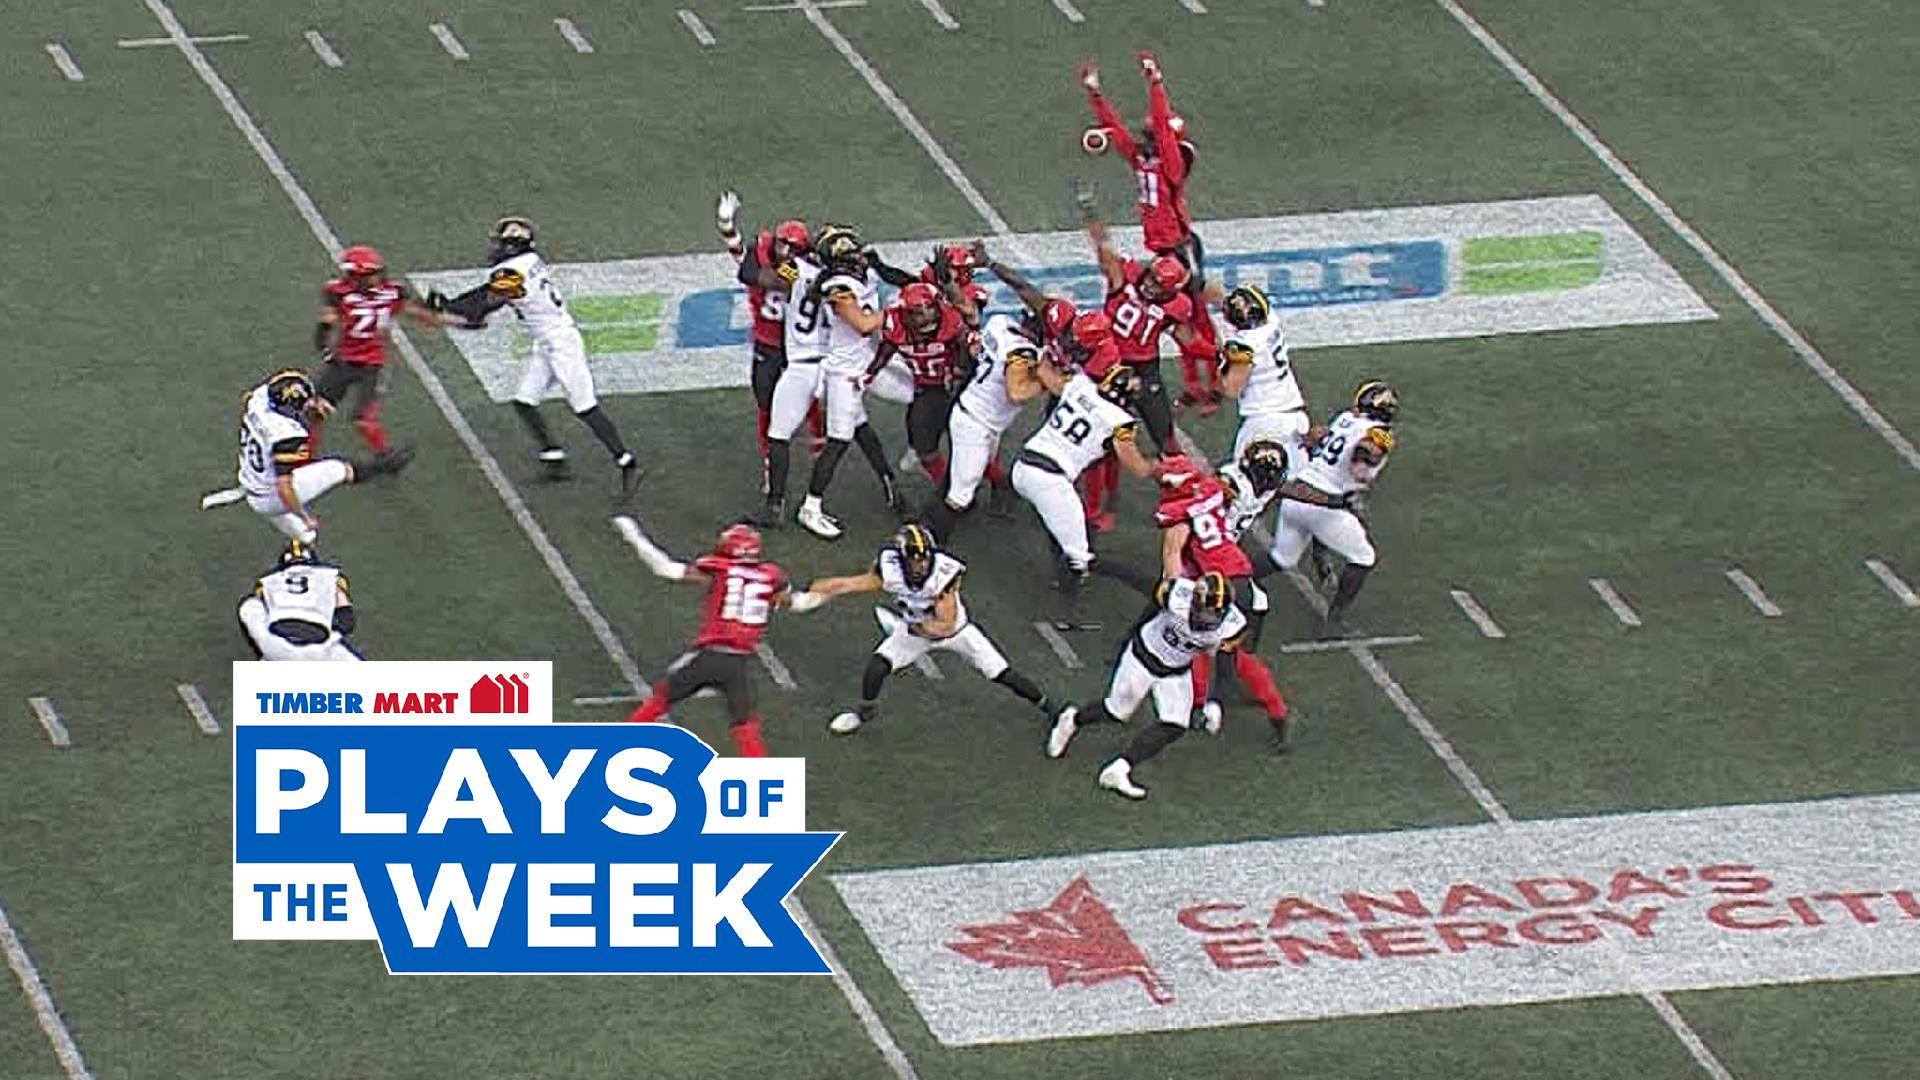 Roberson's leap denies the Ticats in the Timber Mart Plays of the Week - CFL.ca